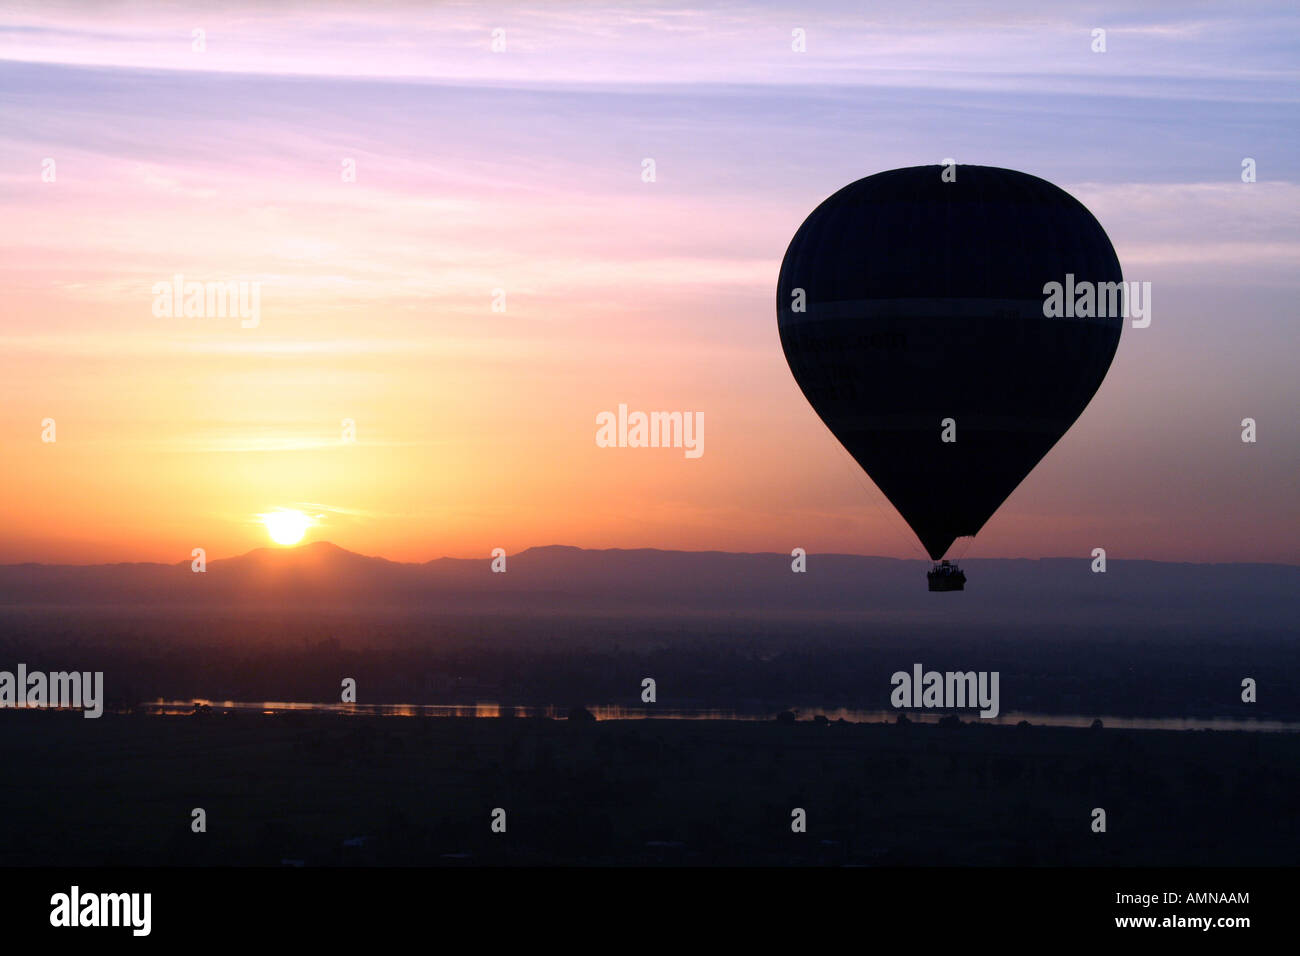 Hot Air Balloon Silhouetted in Front of Beautiful Sunset over the River Nile [Near Luxor, Egypt, Arab States, Africa]. Stock Photo